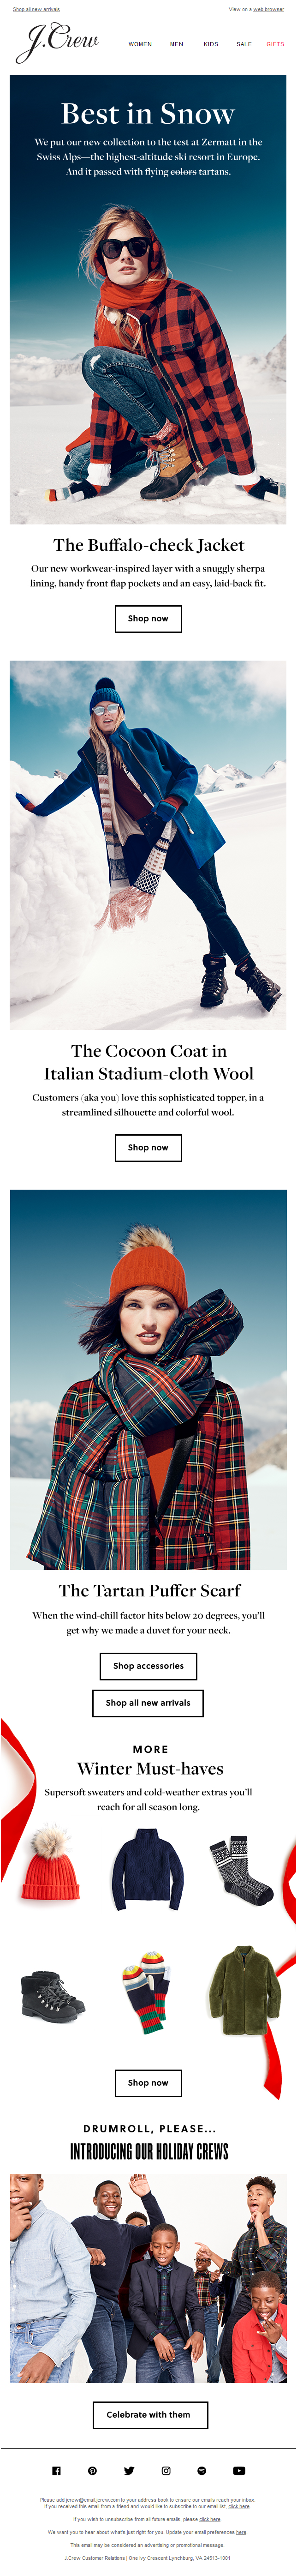 Our new winter collection hits the Swiss Alps